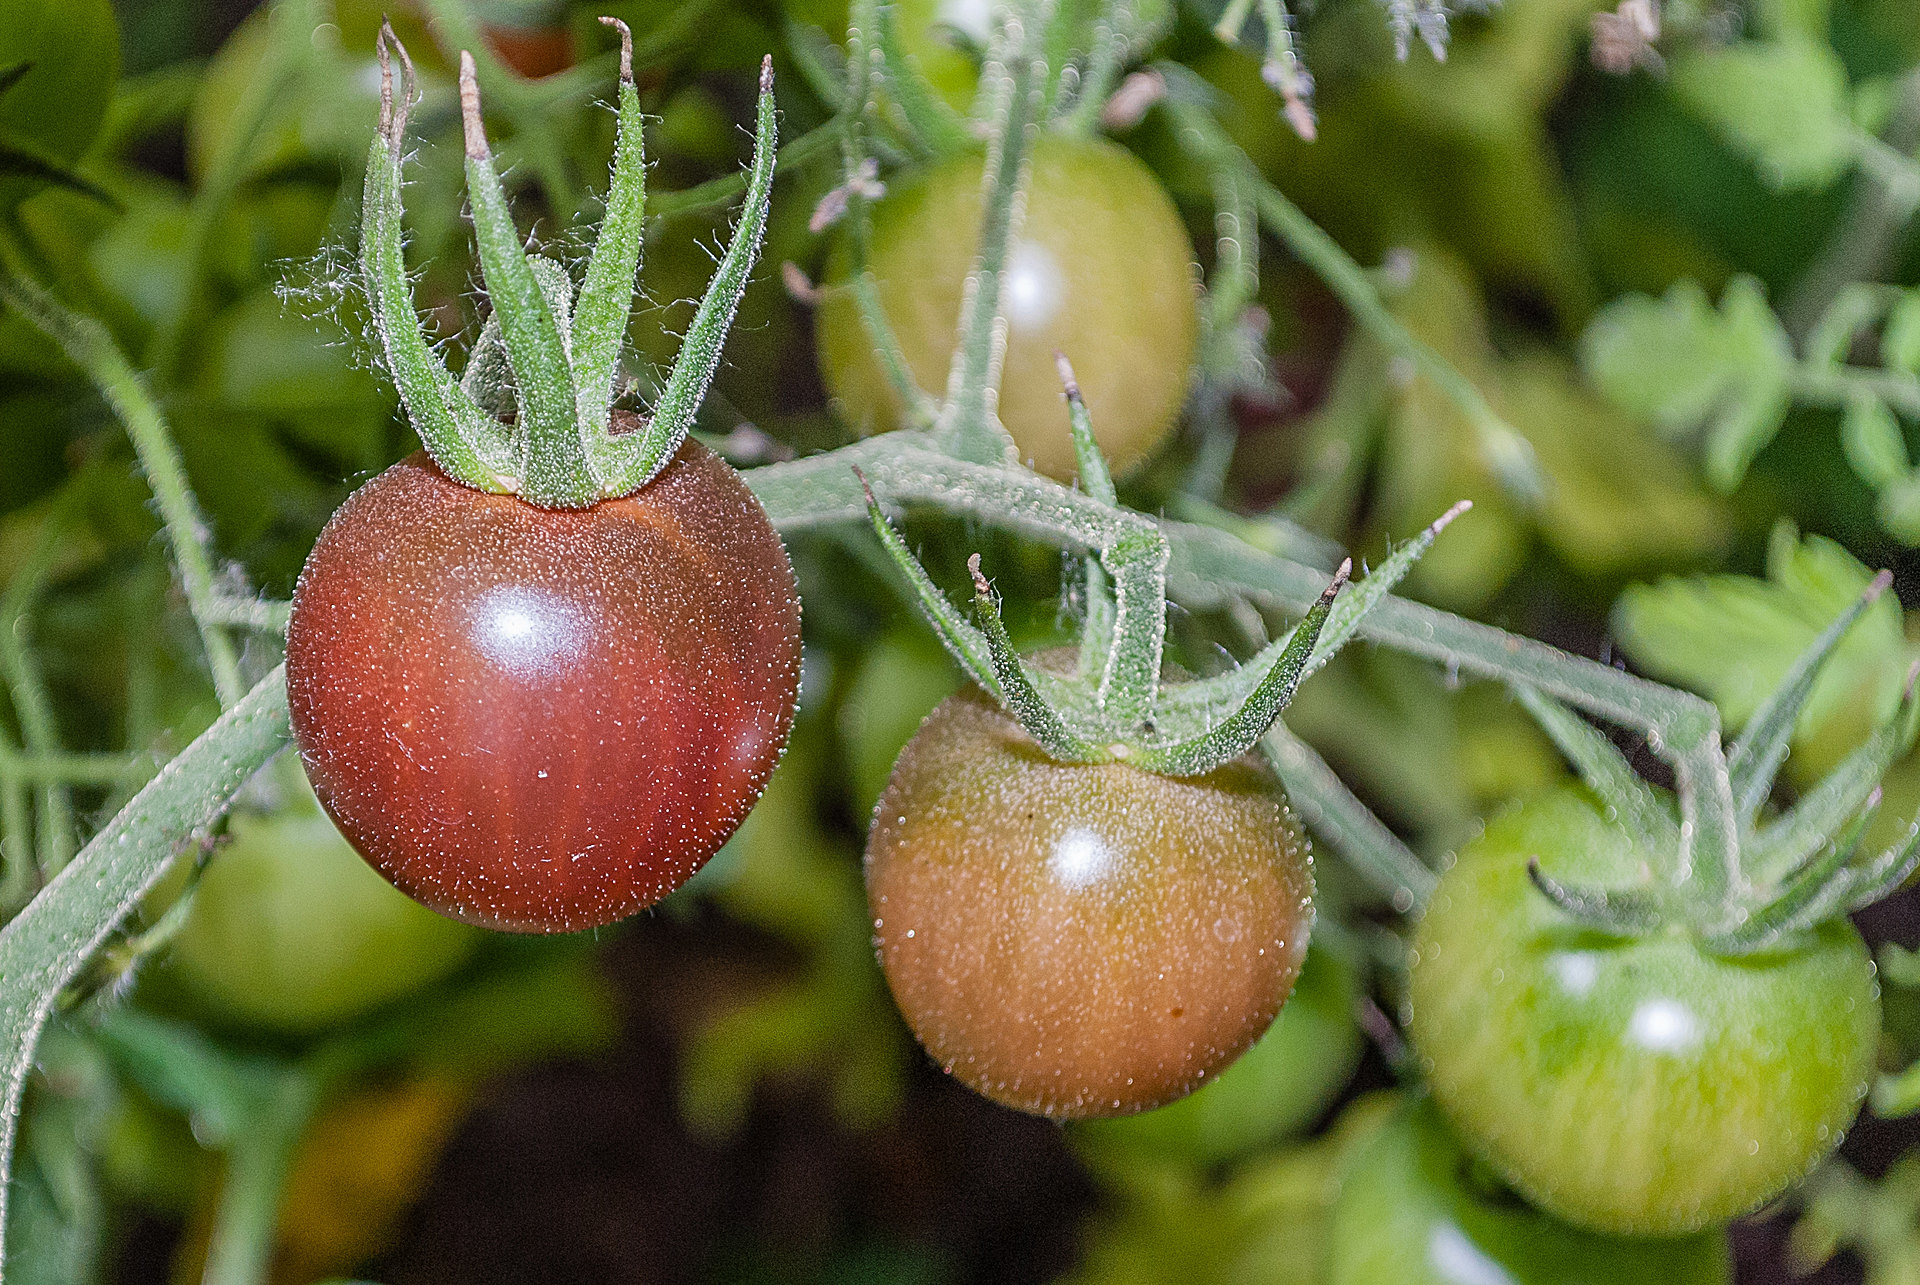 Tomatensorte Black Cherry